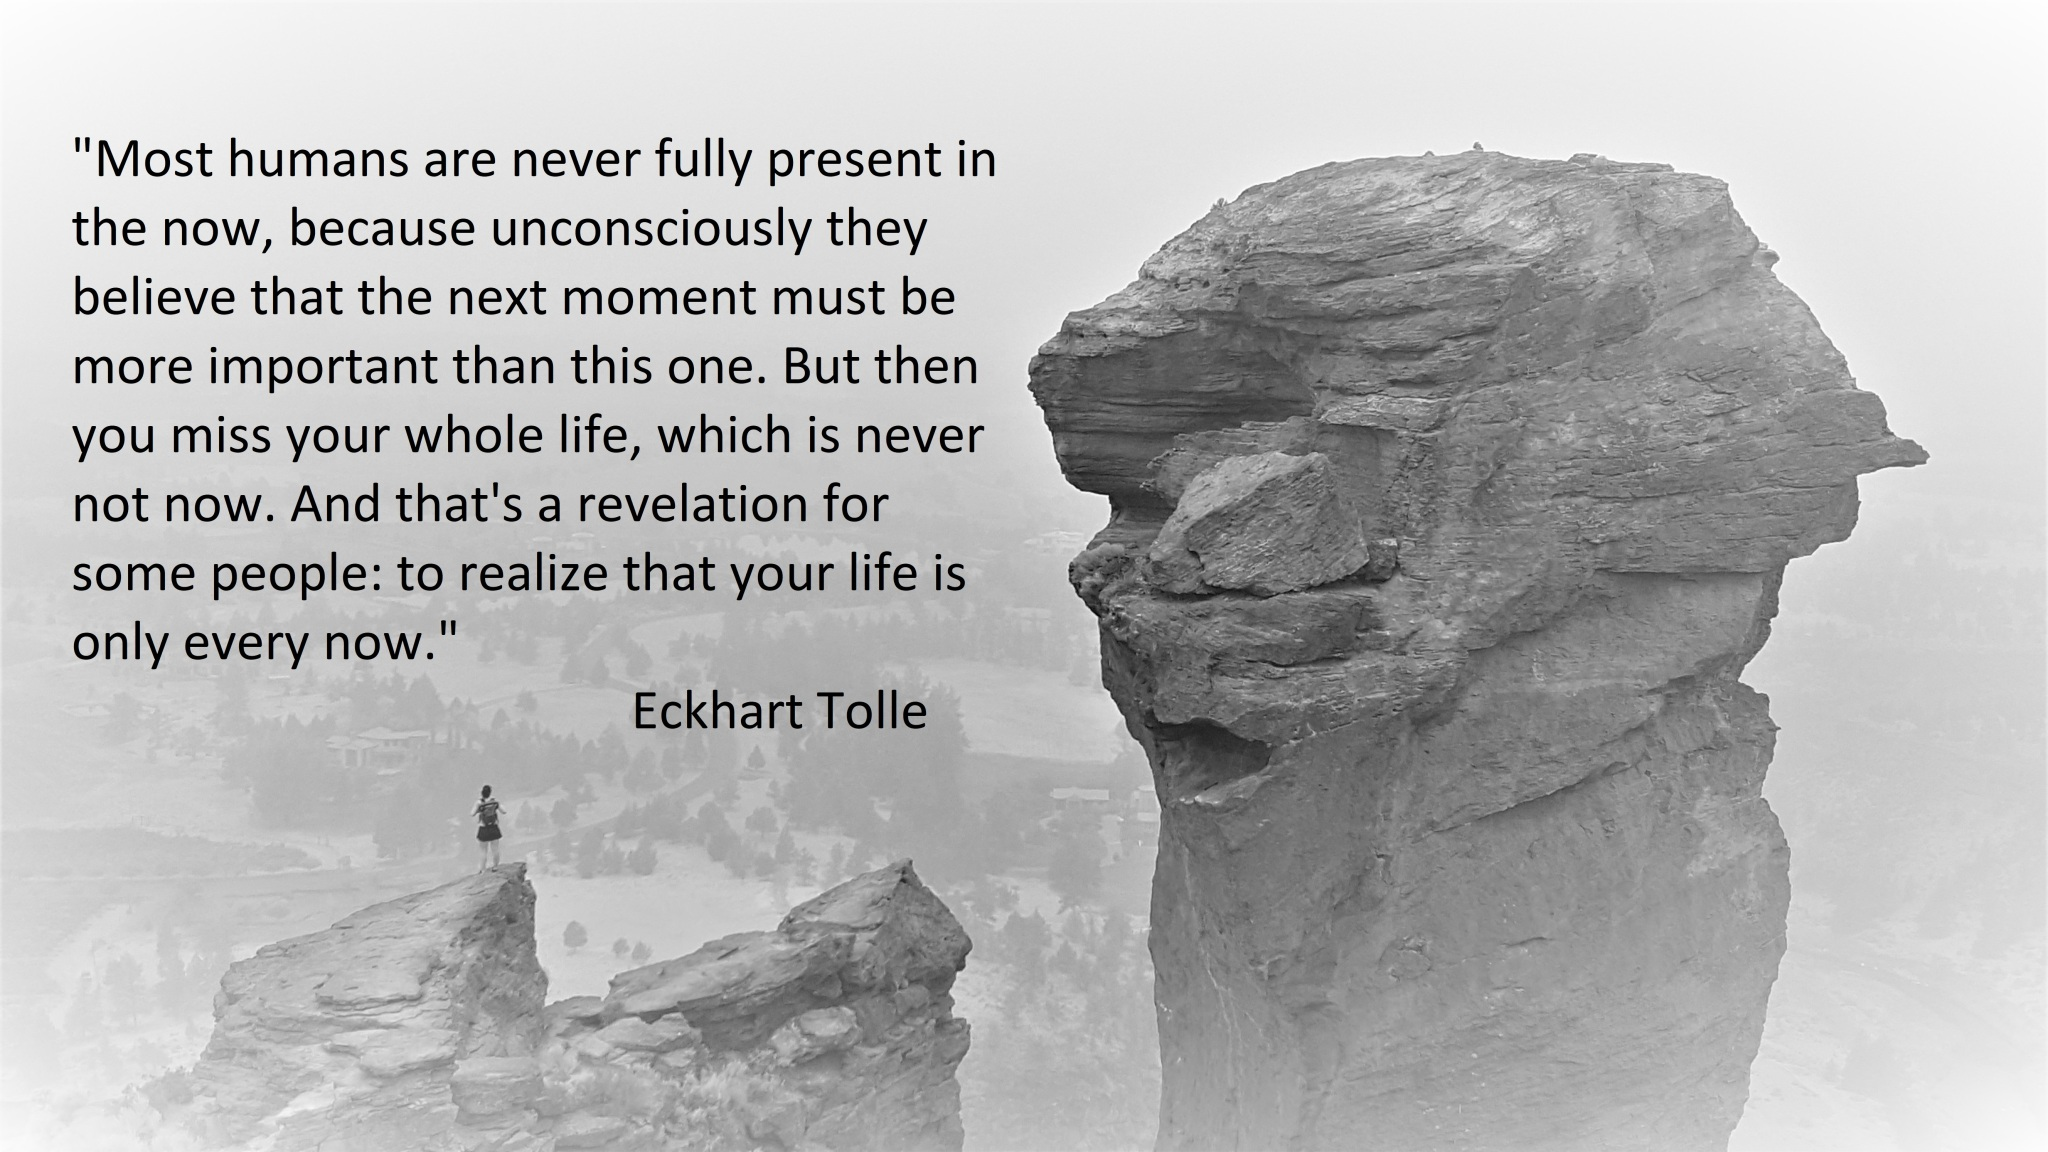 Eckhart Tolle - Most humans are never fully present